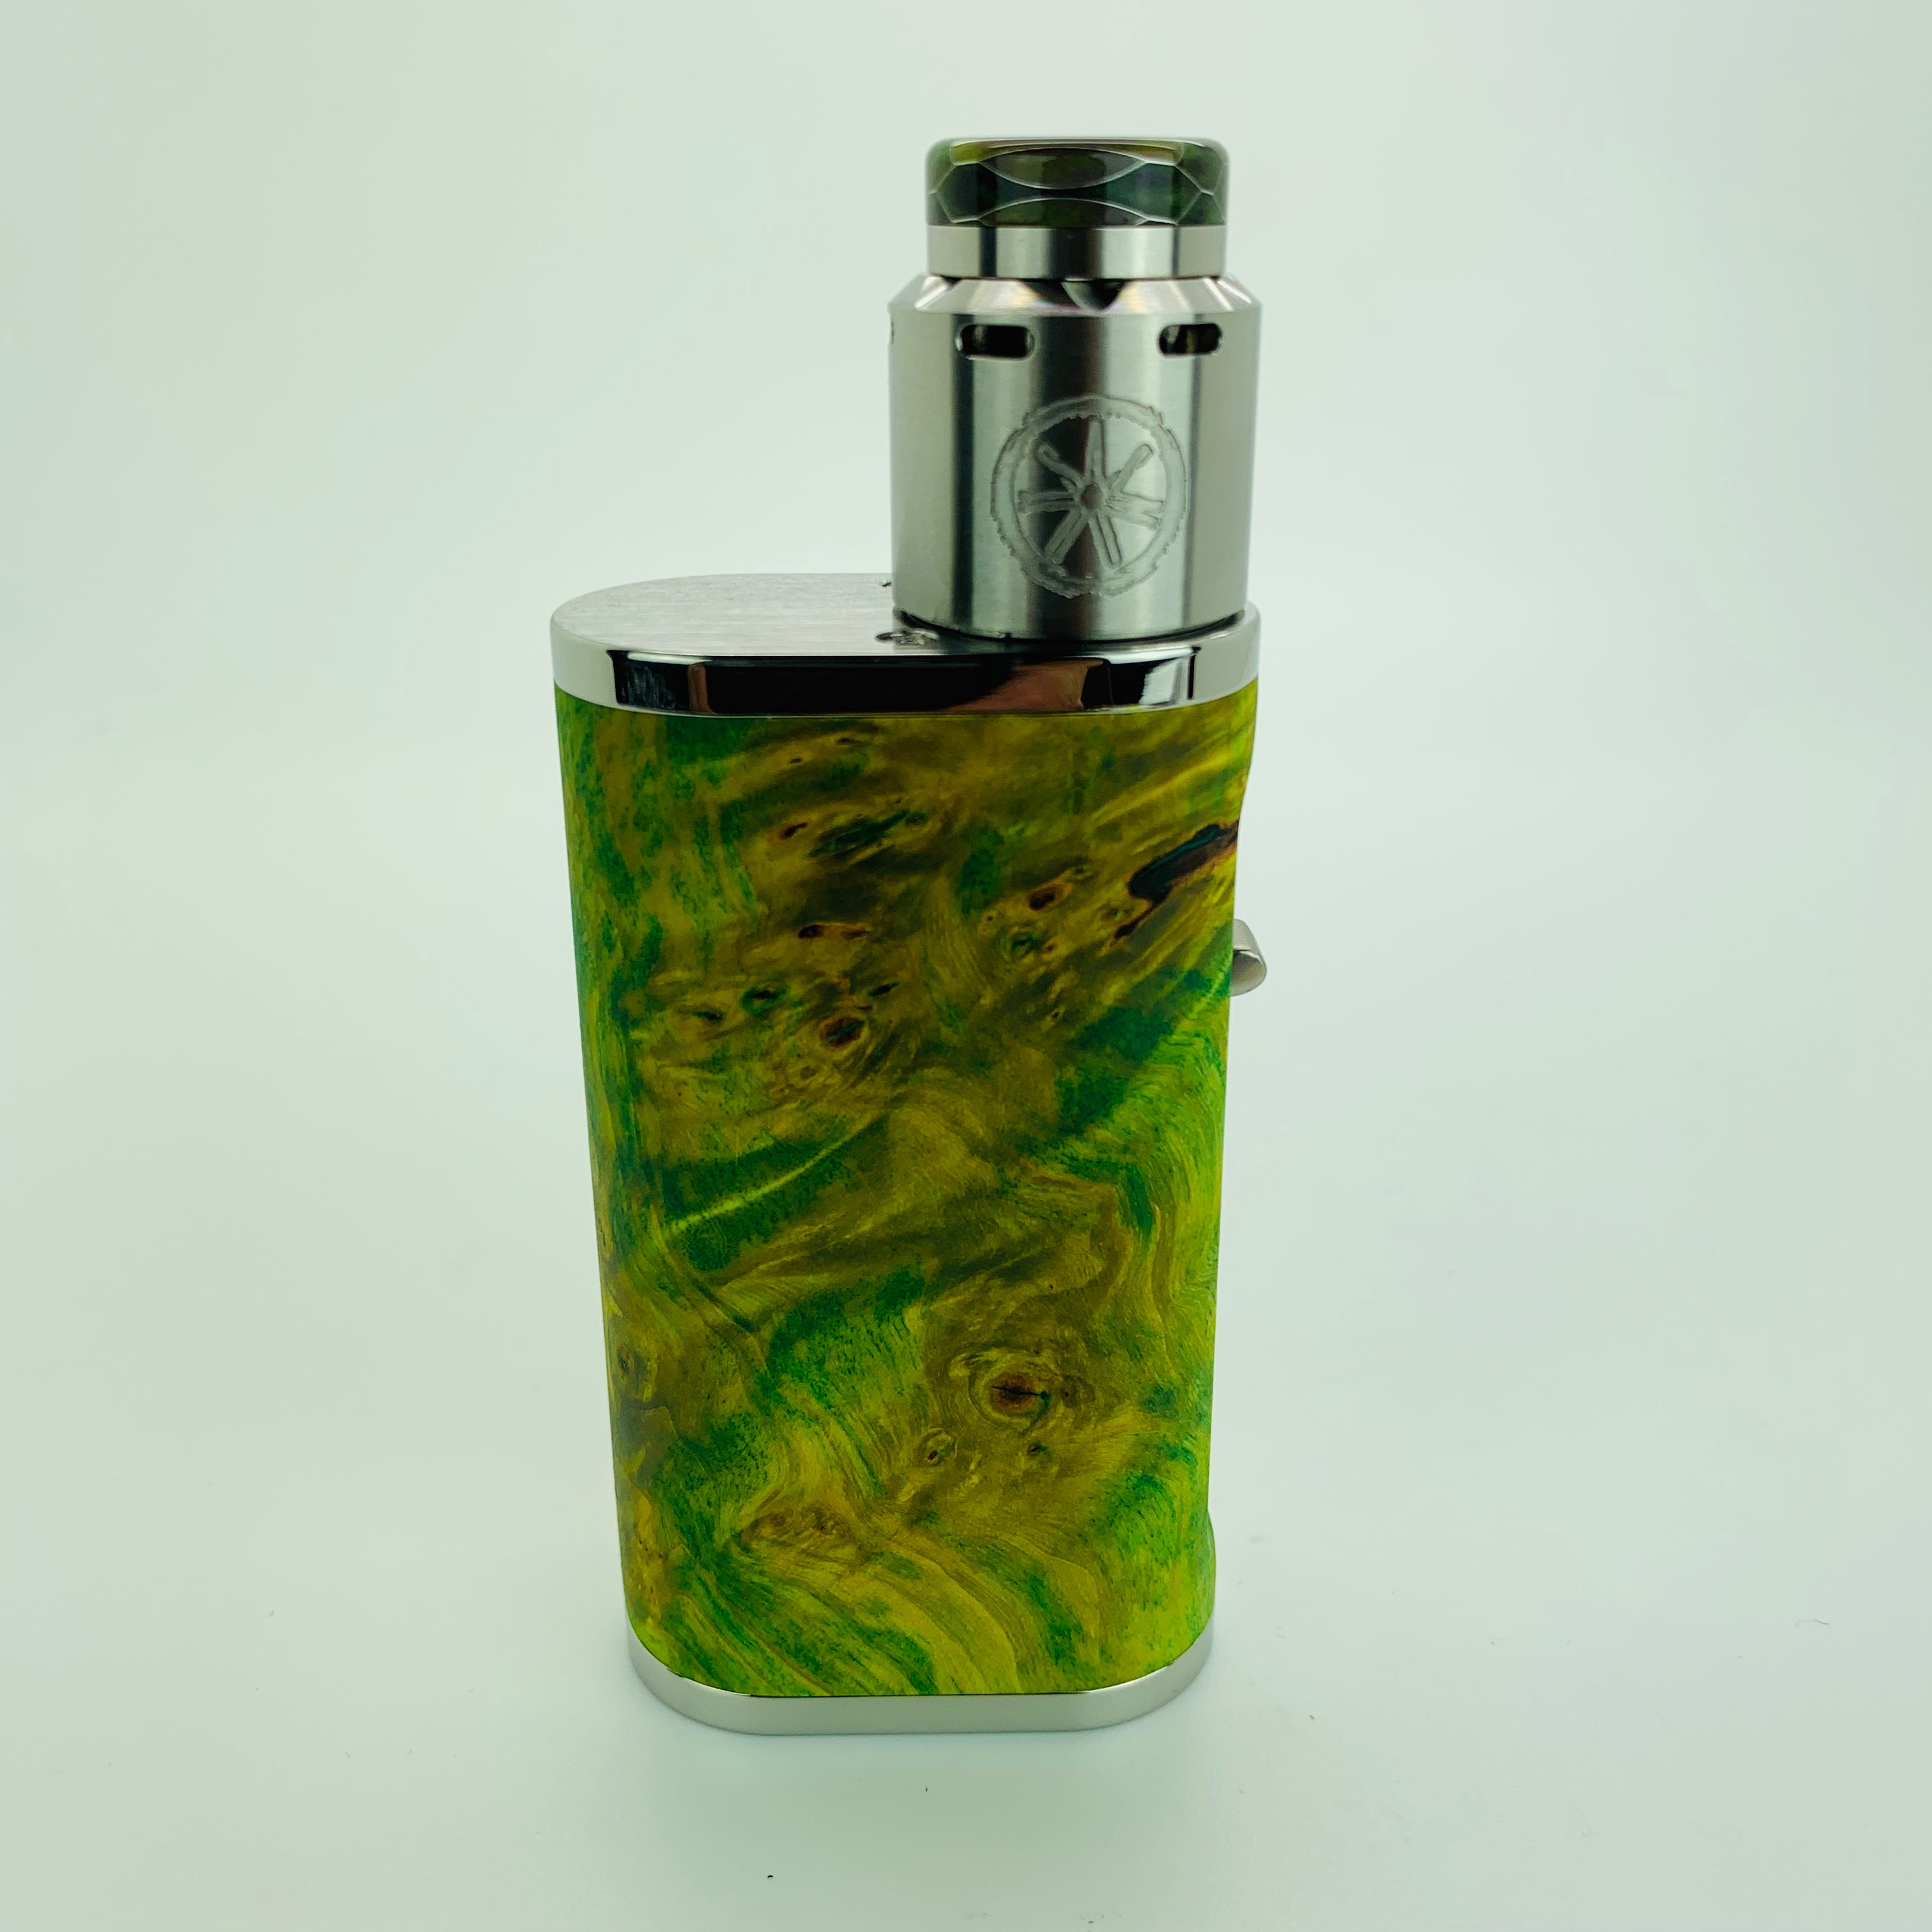 1 of 1 Pumper 18 Squonk Kit with .Black RDA and Honeycomb Drip Tip #S60